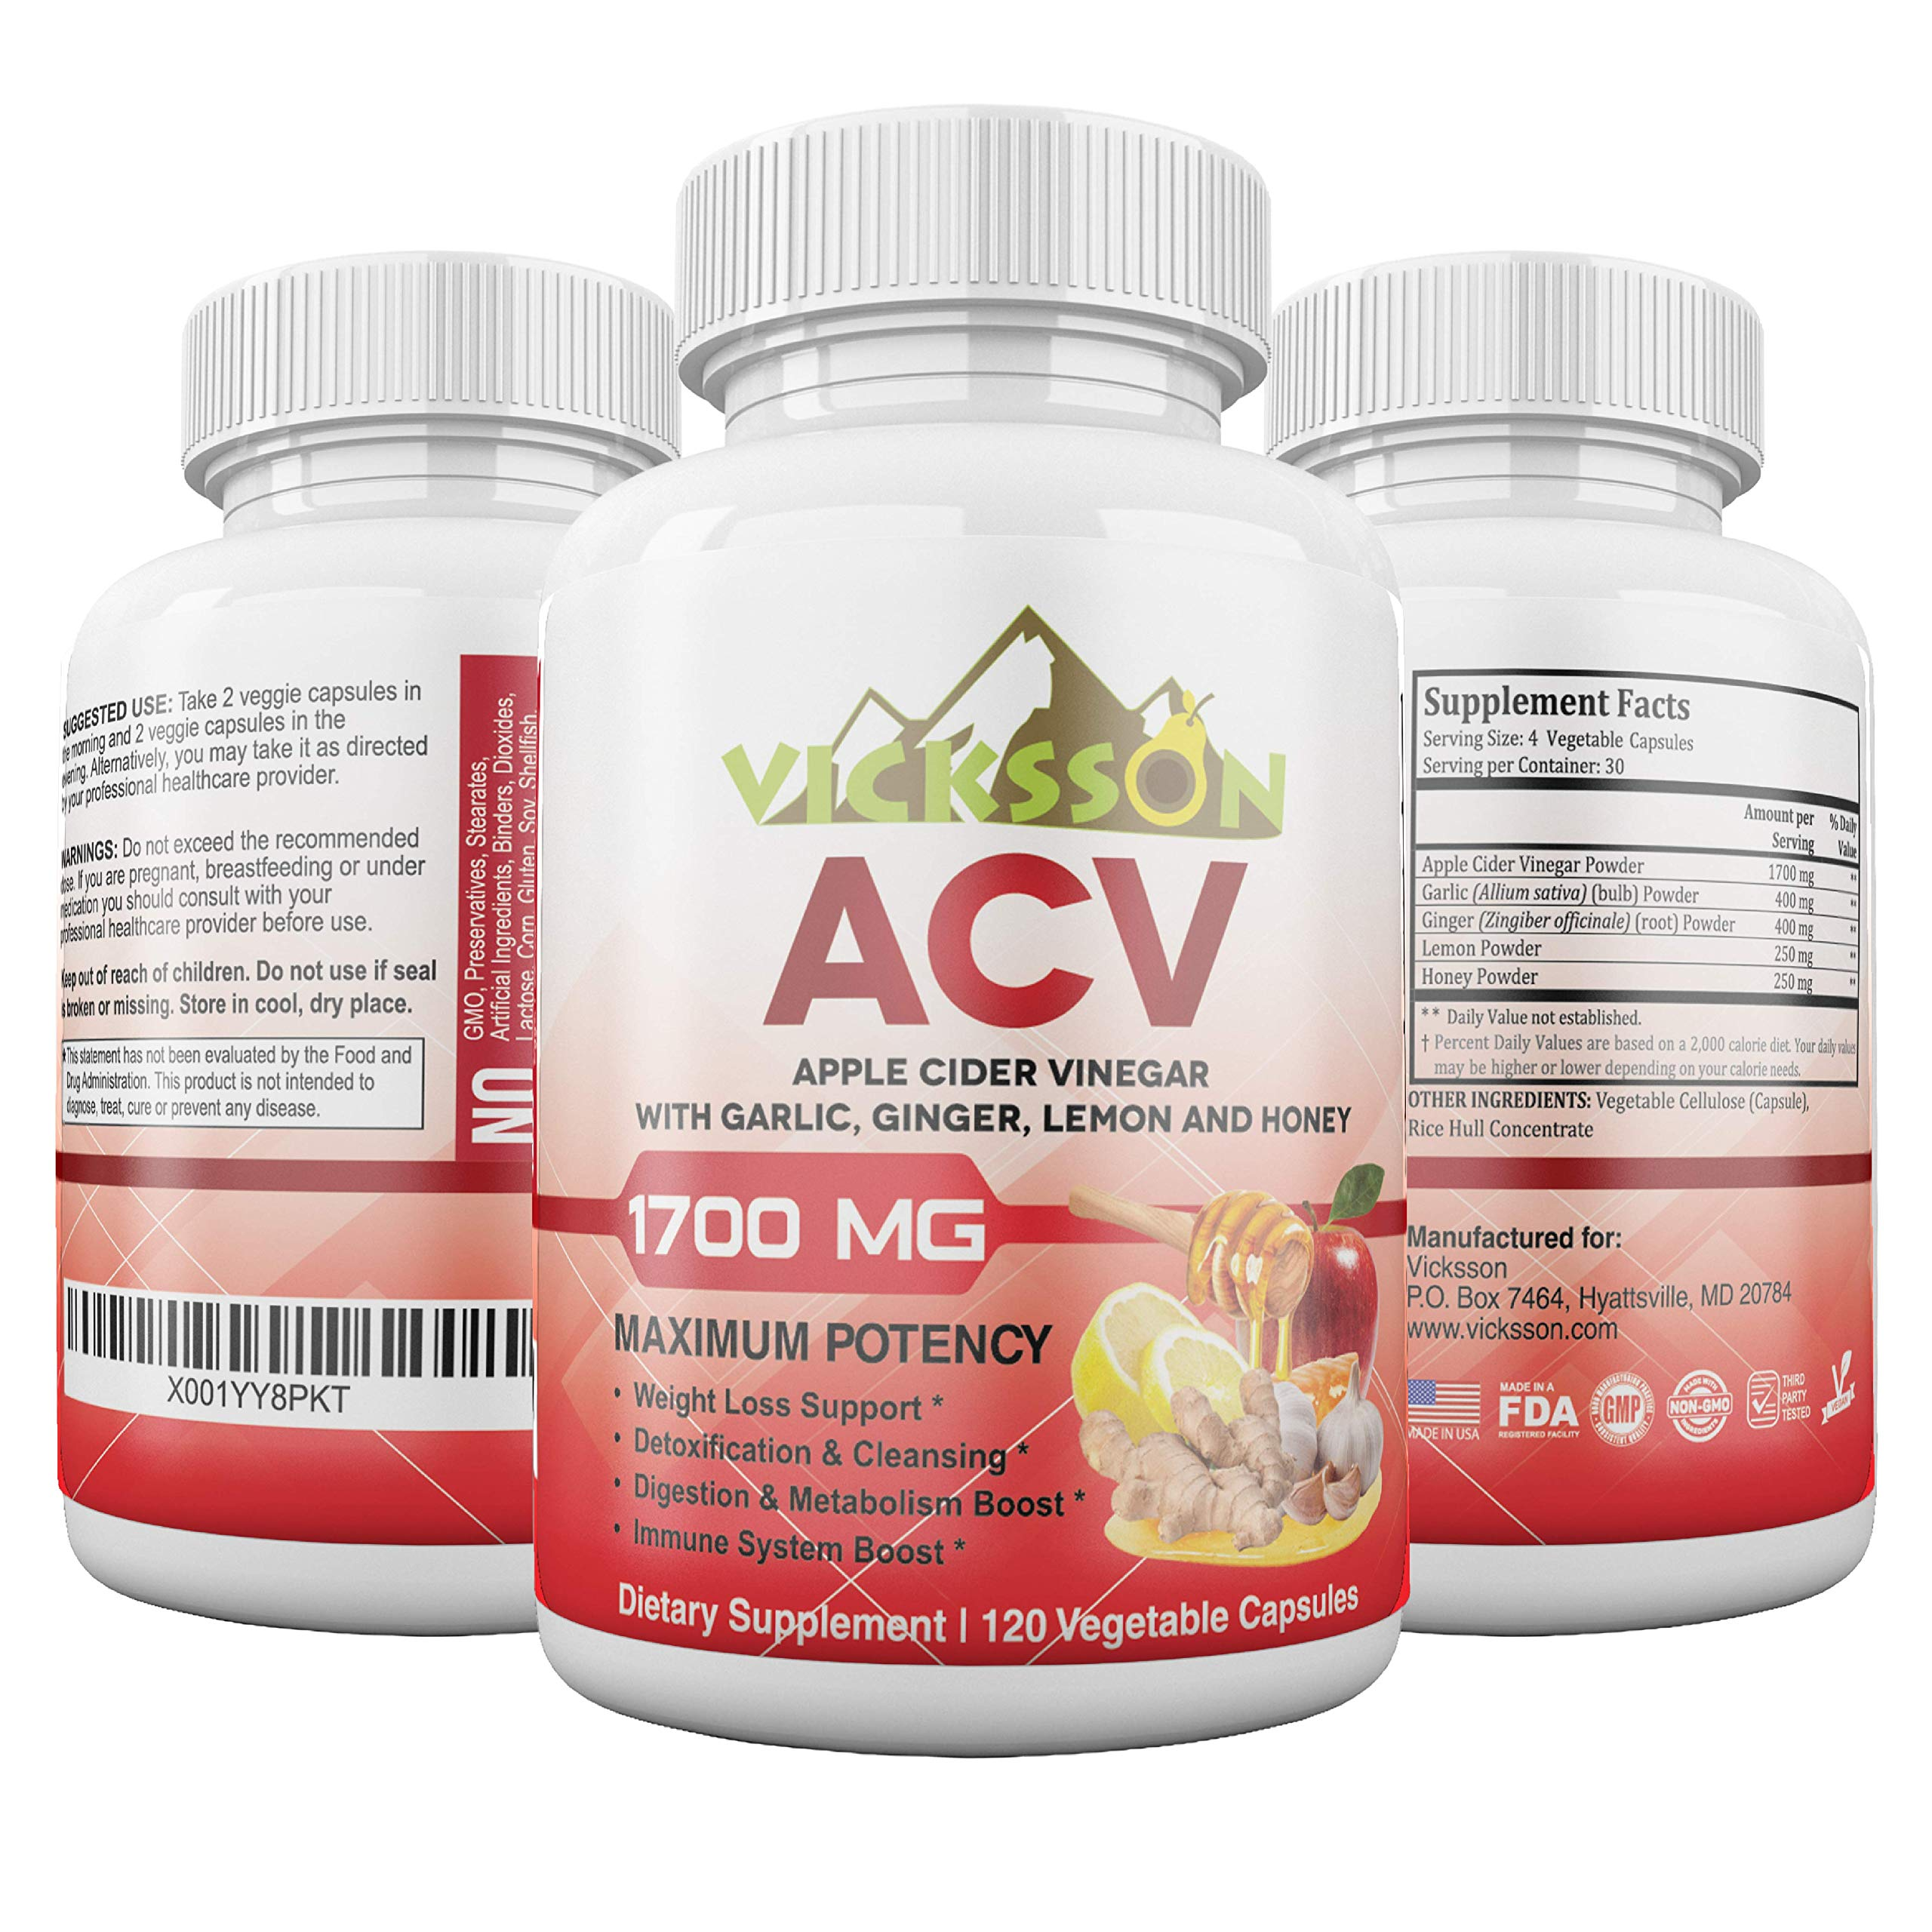 Vicksson Apple Cider Vinegar Pills 1700 mg of ACV with Garlic, Ginger, Lemon & Honey for Weight Loss, Detox, Cleanse, Appetite Suppressant, Metabolism & Immune Booster, Bloating Relief | 120 Capsules Price: $14.99